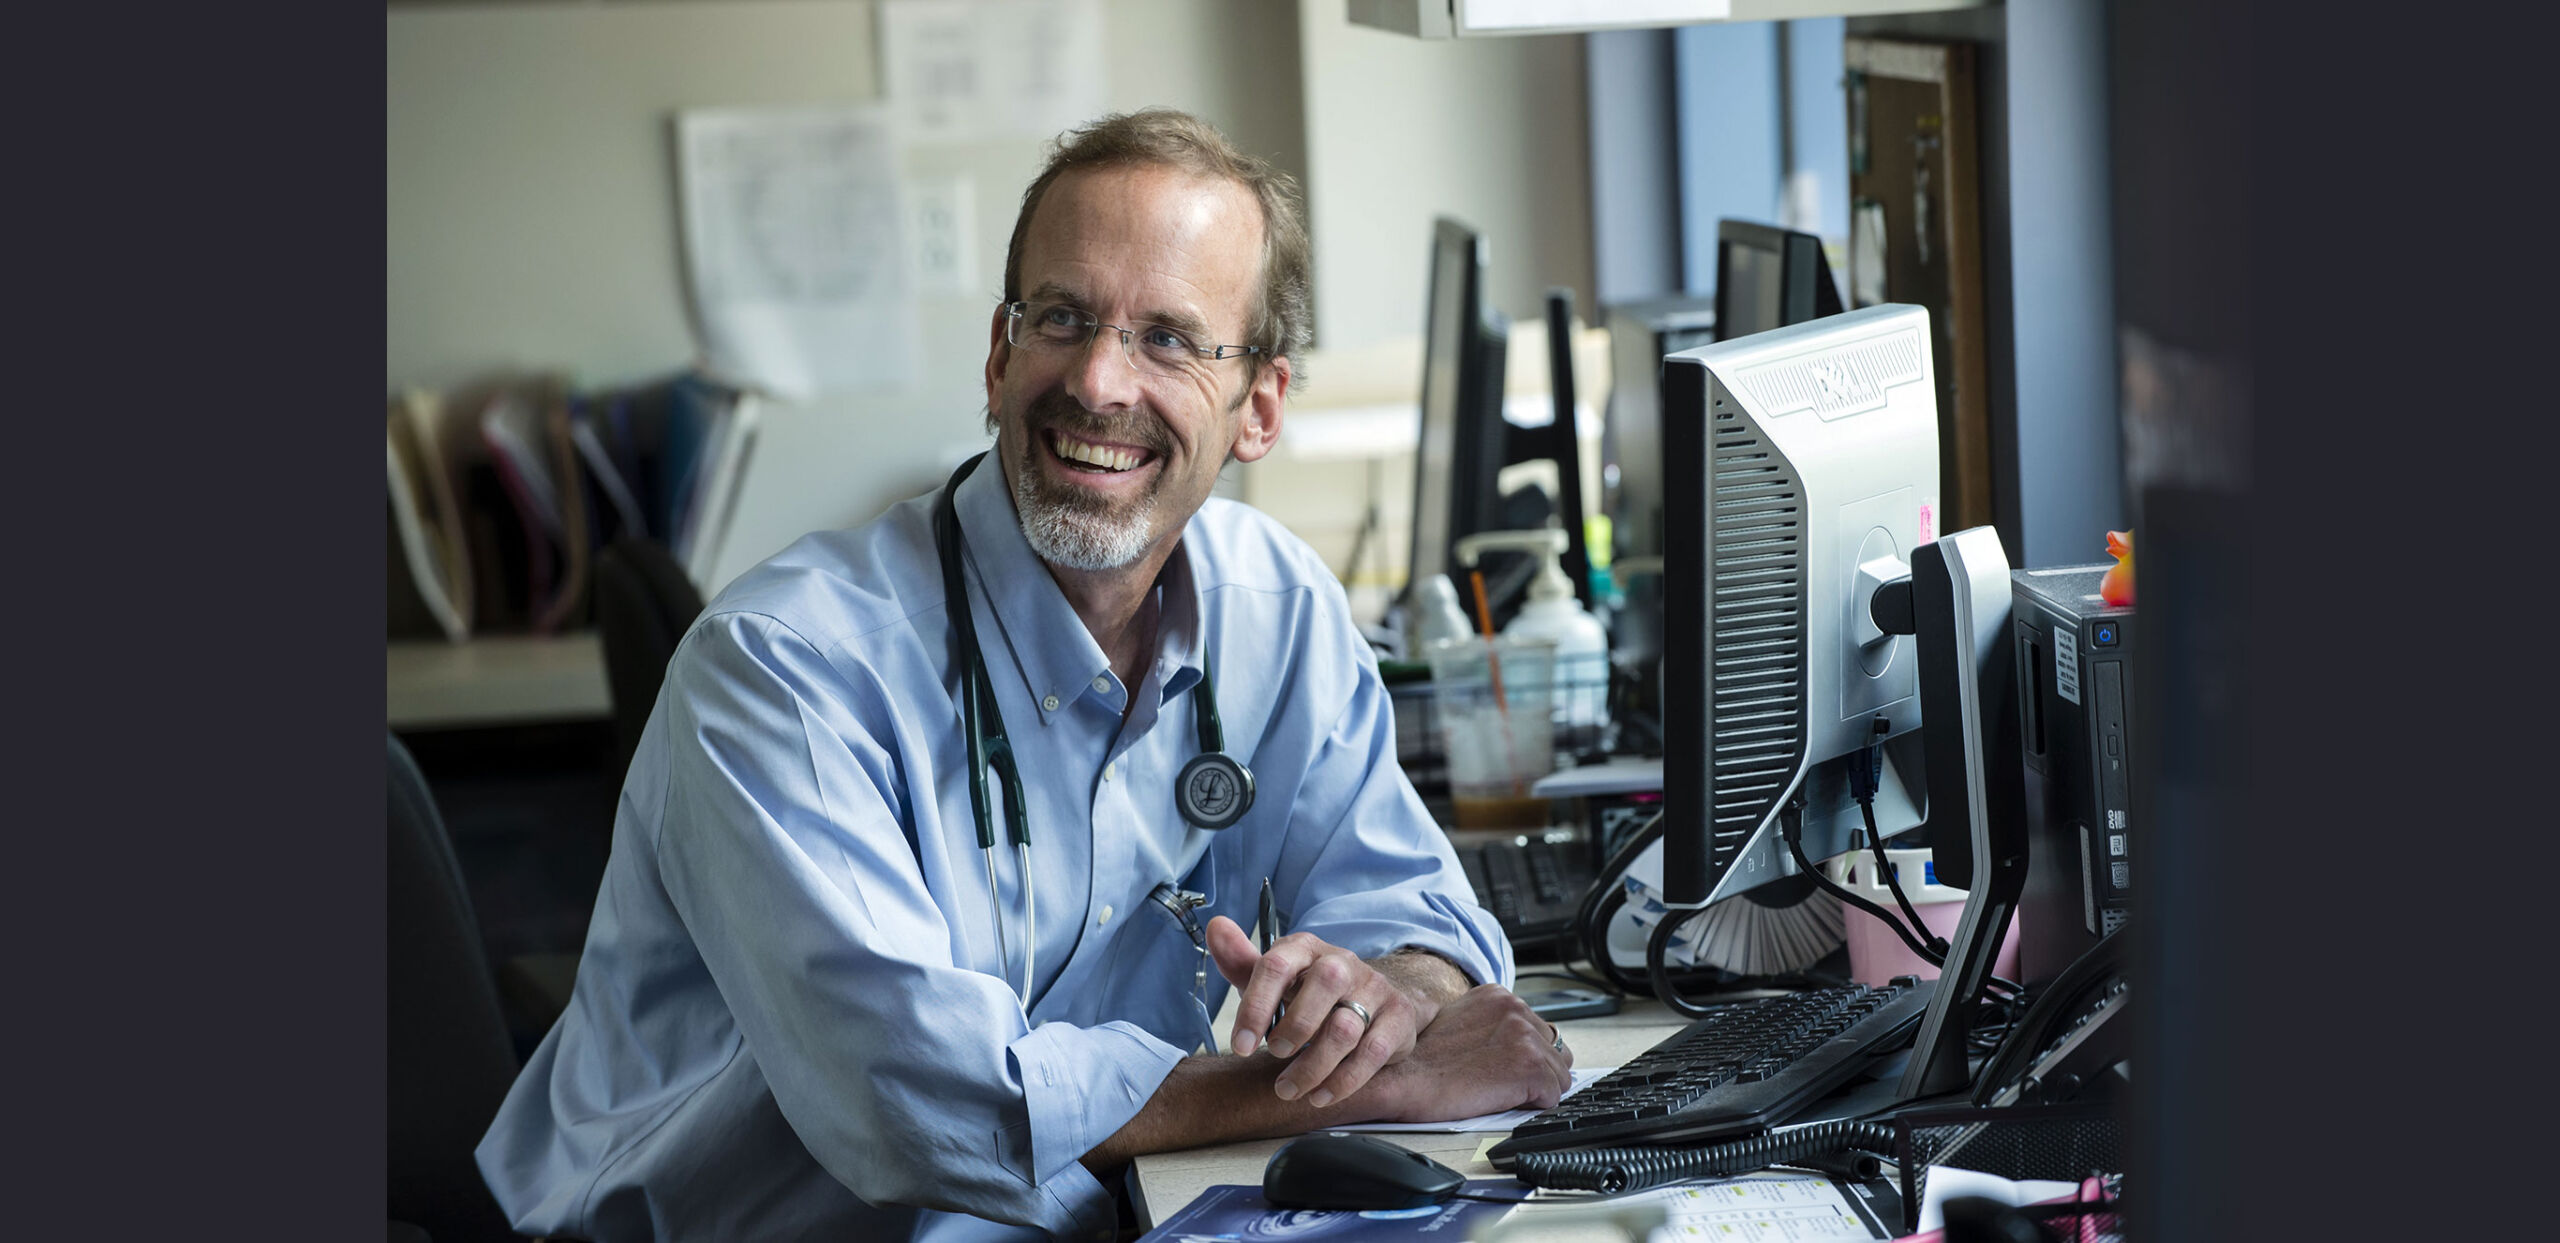 Peter Elsea, MD, at a workstation at Northampton Family Medicine, 22 Atwood Drive, Northampton, MA 01060.